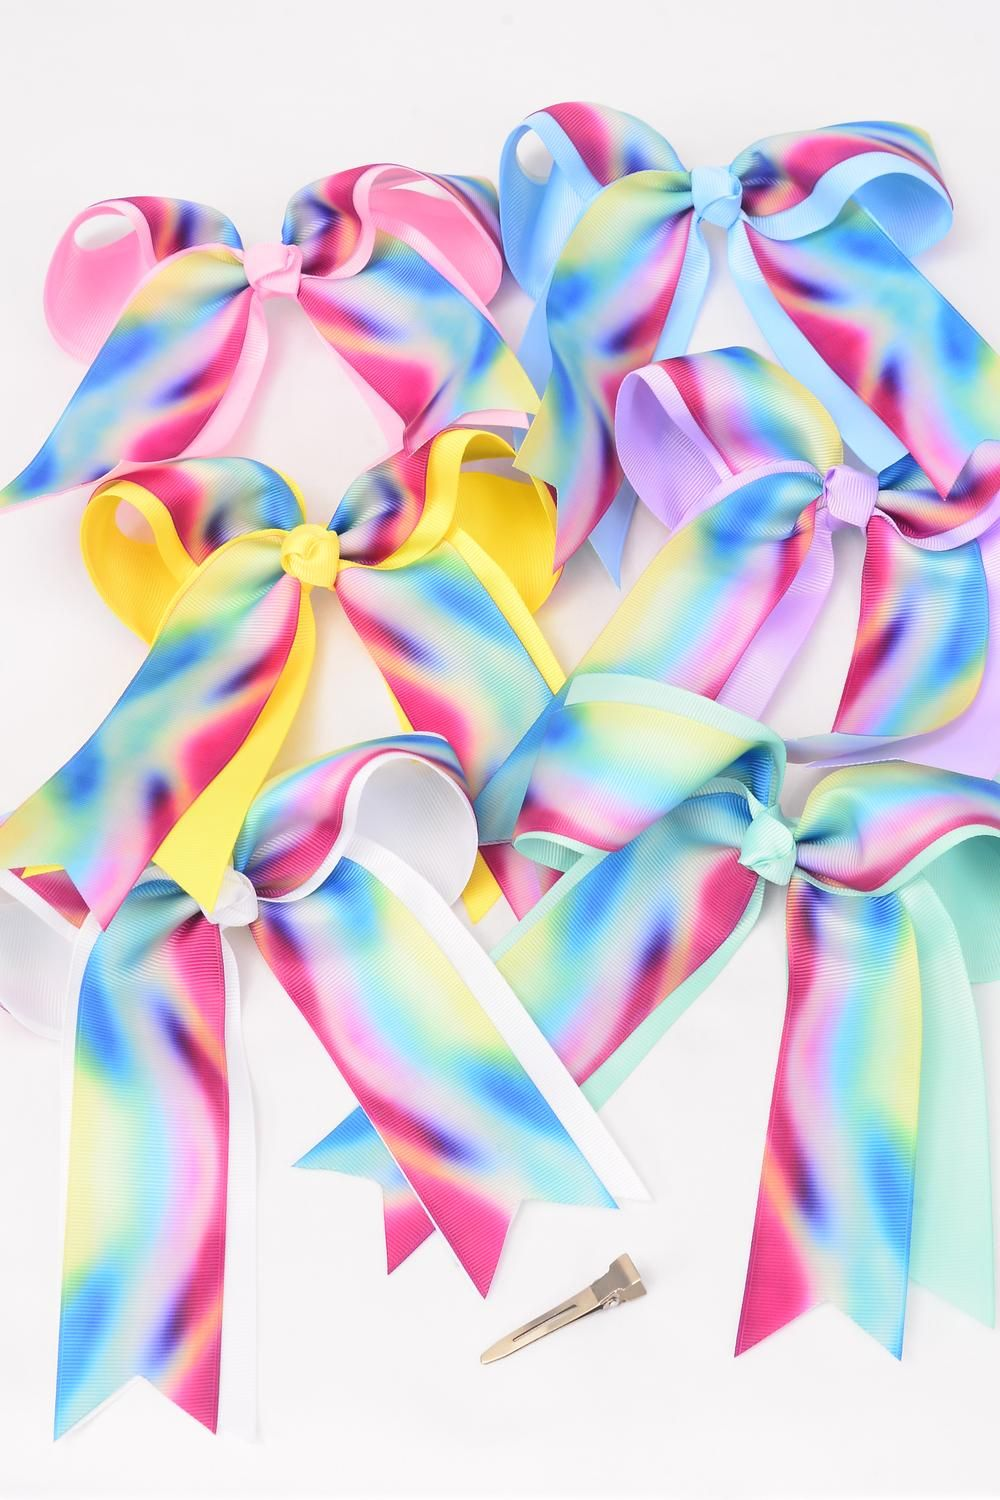 "Hair Bow Jumbo Long Tail Center Clear Stones Tiedye Grosgrain Bow-tie Pastel/DZ **Pastel** Size-7""x 6"",Alligator Clip,2 White,2 Baby Pink,2 Lavender,2 Blue,2 Yellow,1 Hot Pink,1 Mint Green,7 Color Asst,Clear Strip & UPC Code"